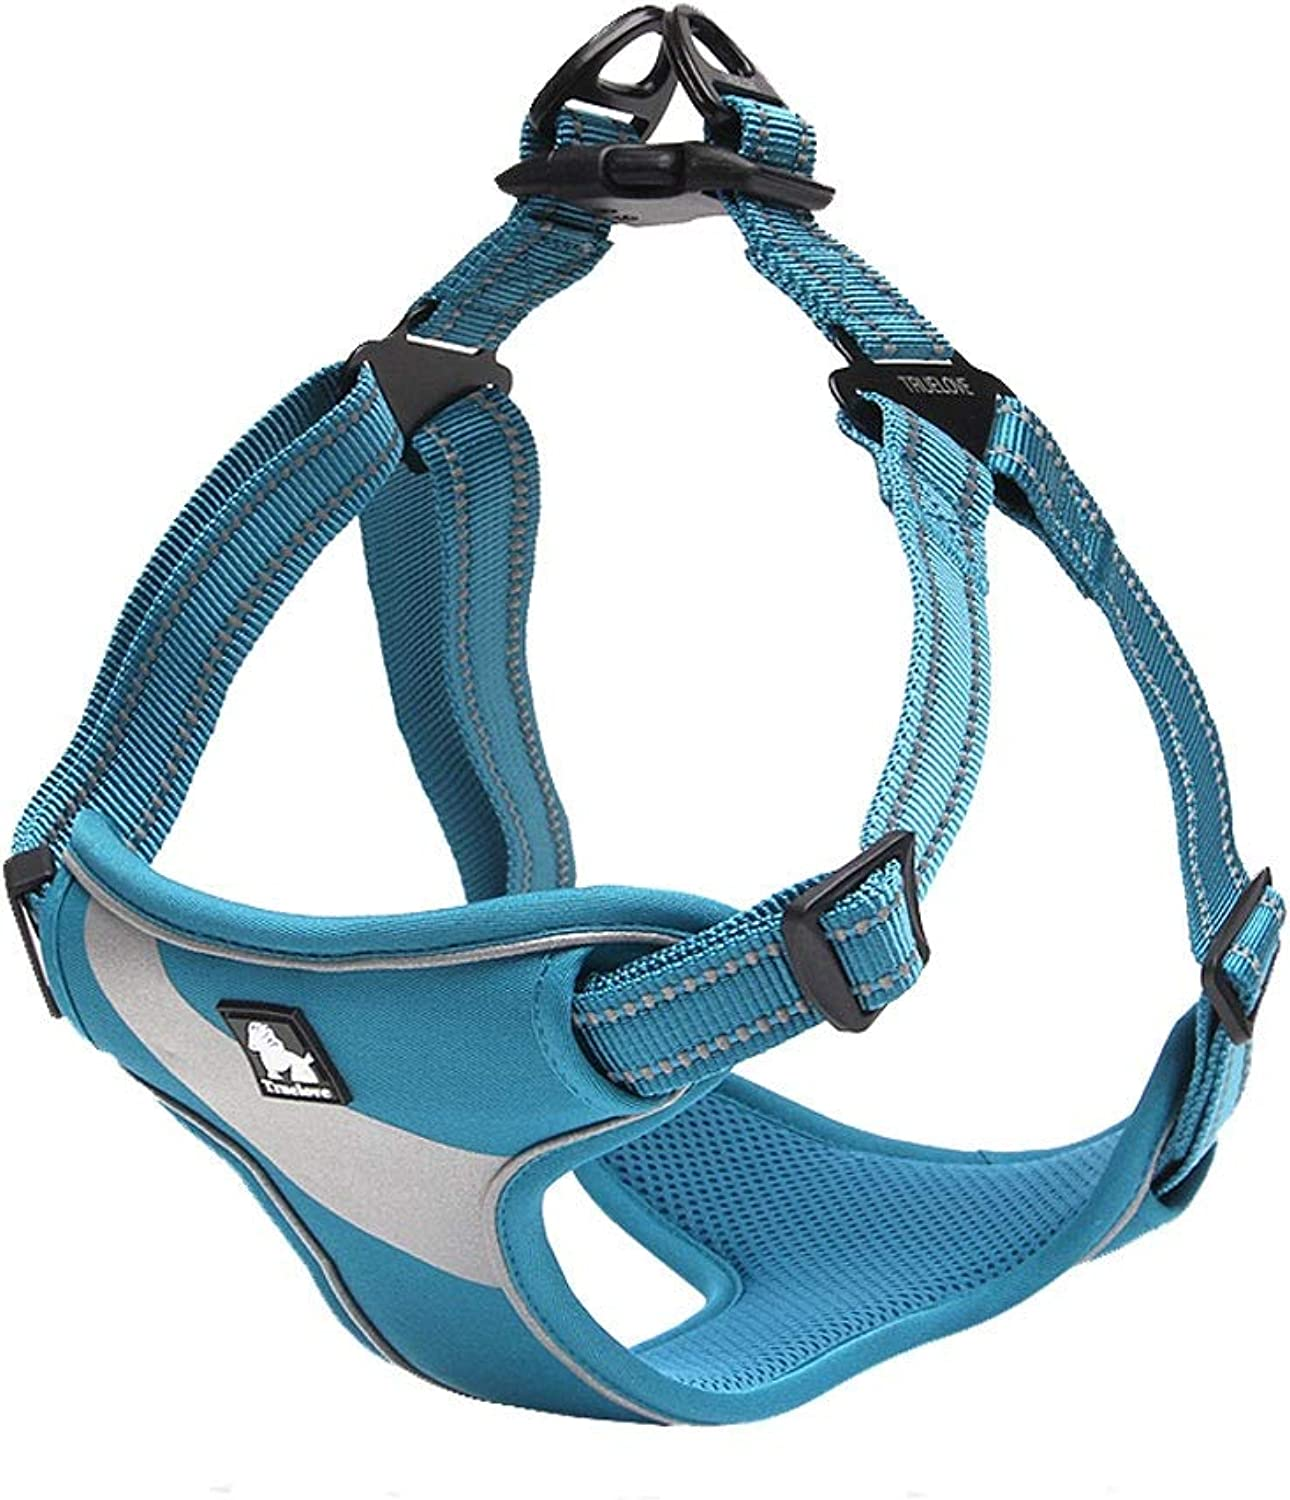 Back Chest with Pet bluee Adjustable Strap Clip MultiFunction Breathable Fabric Dog Vehicle Walking Vest Strap Outdoor Travel MultiFunctional Breathable Fabric (color   bluee, Size   M)